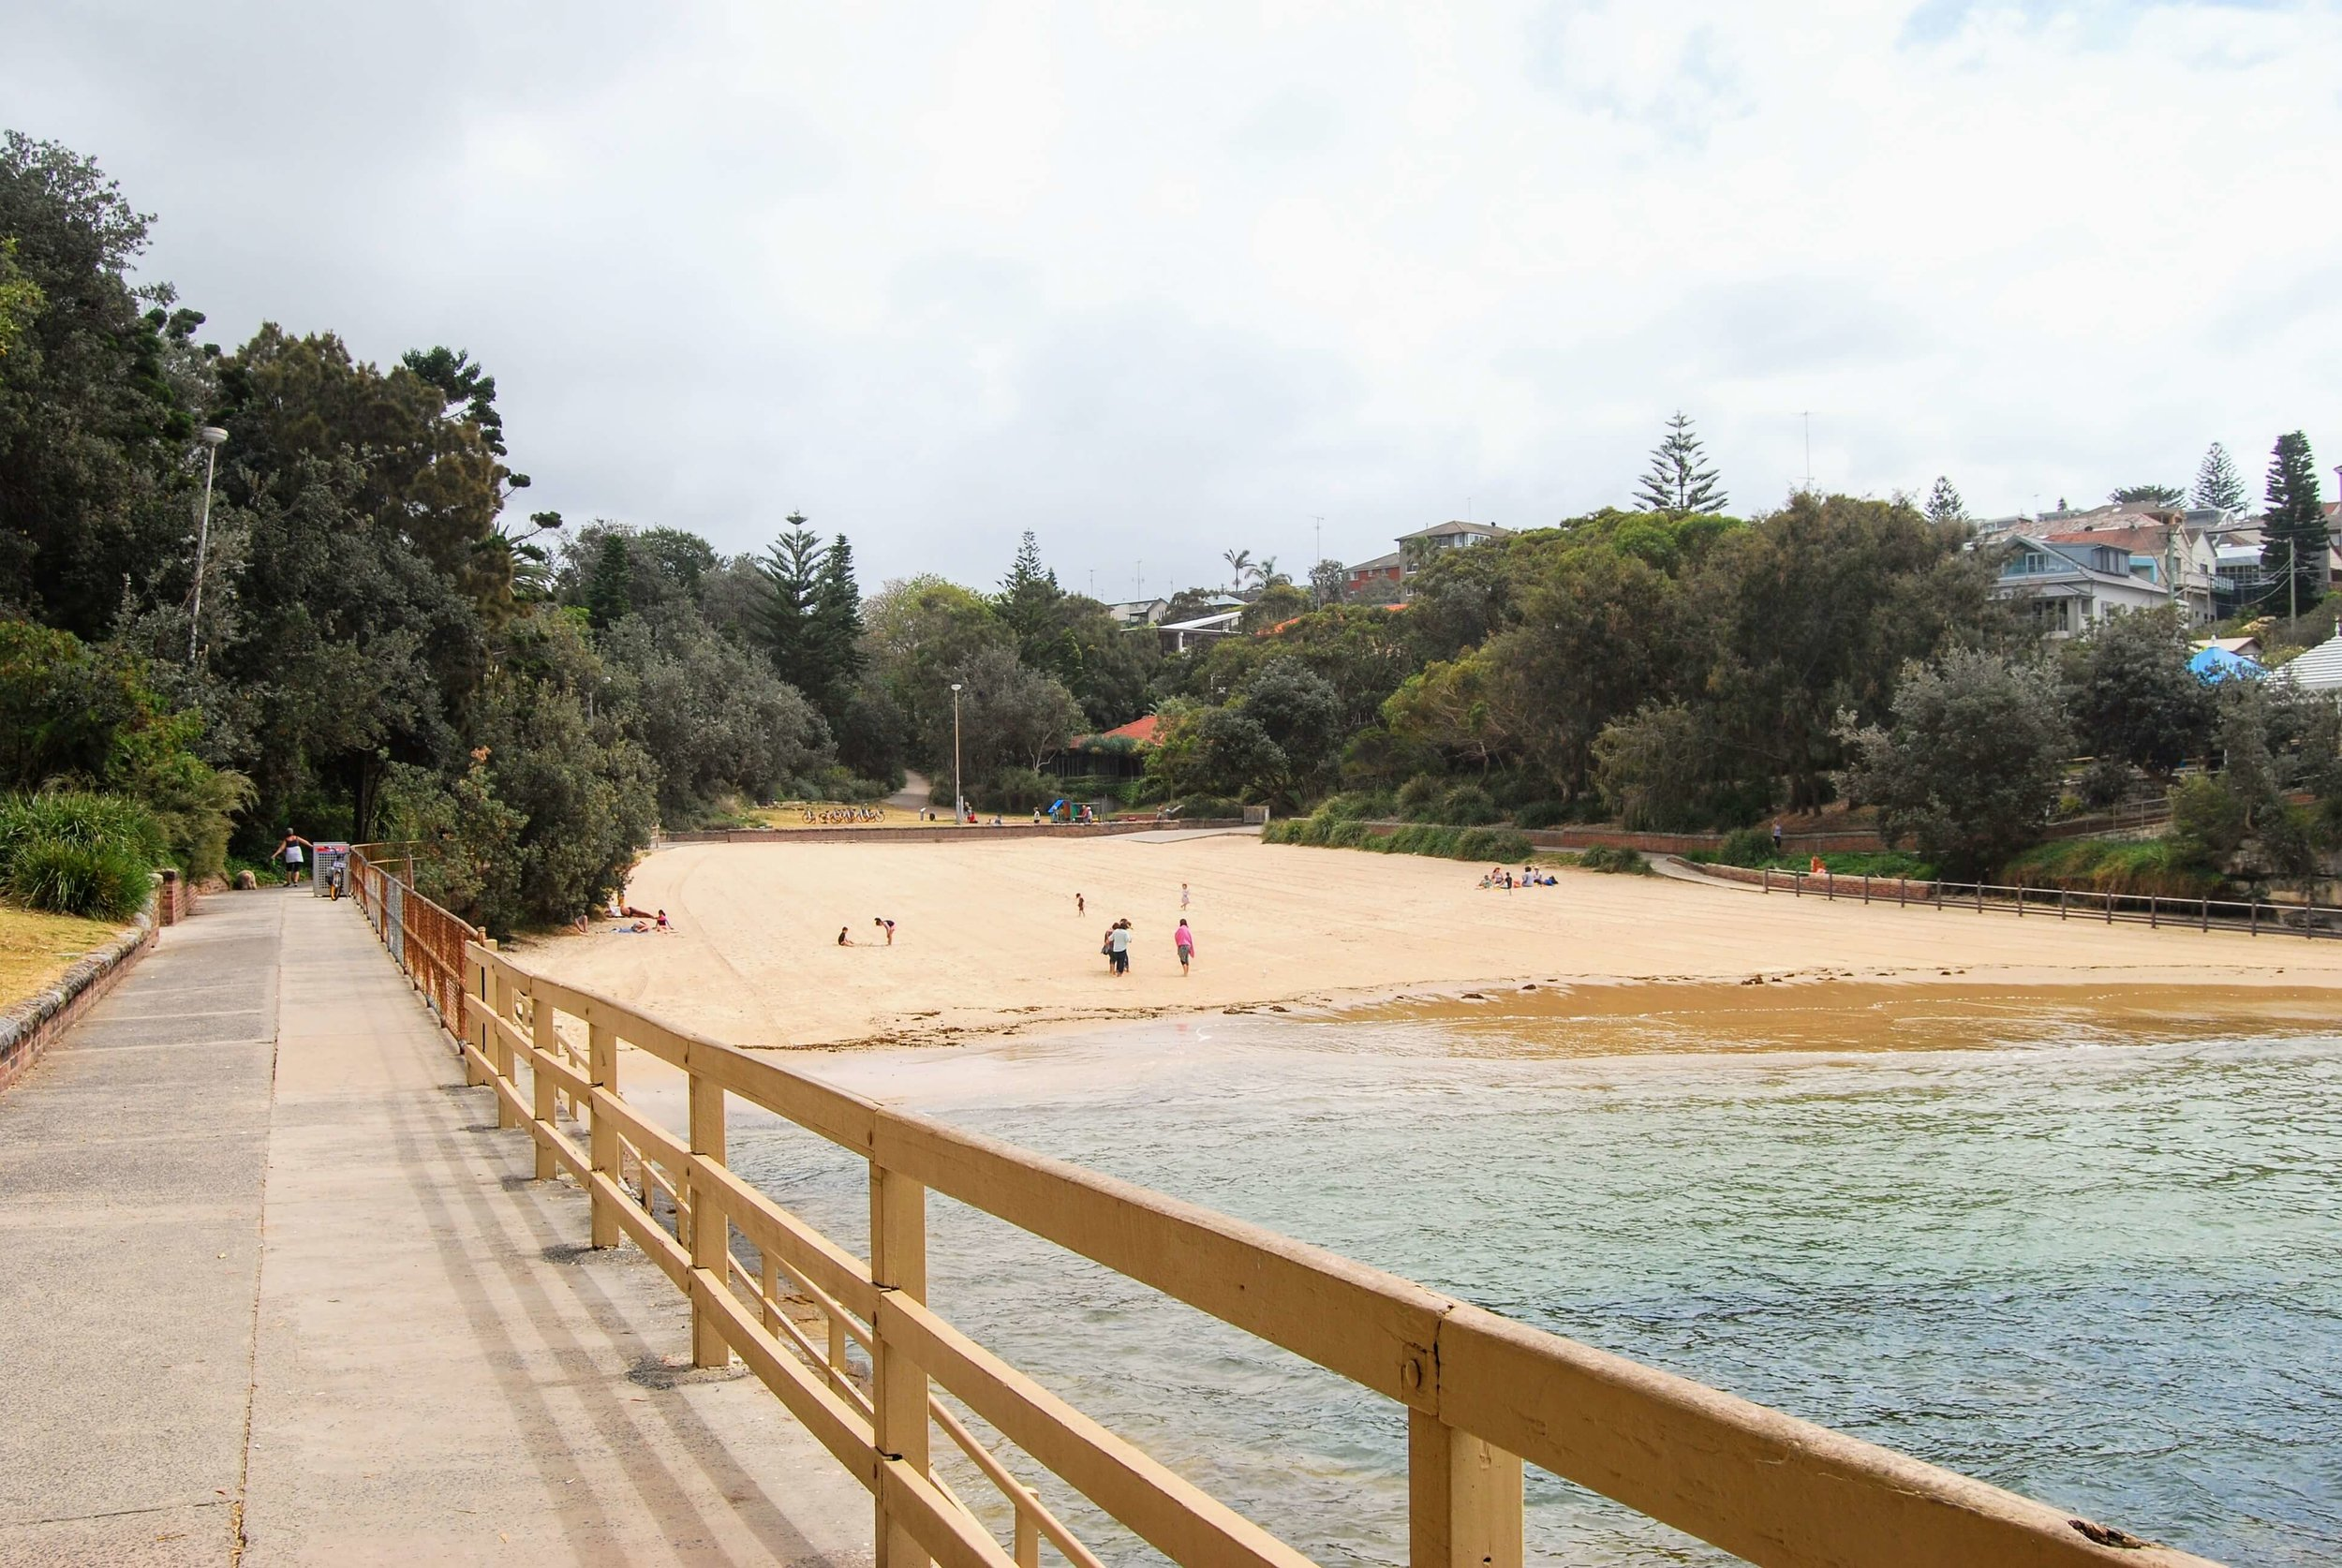 Entering Clovelly Beach